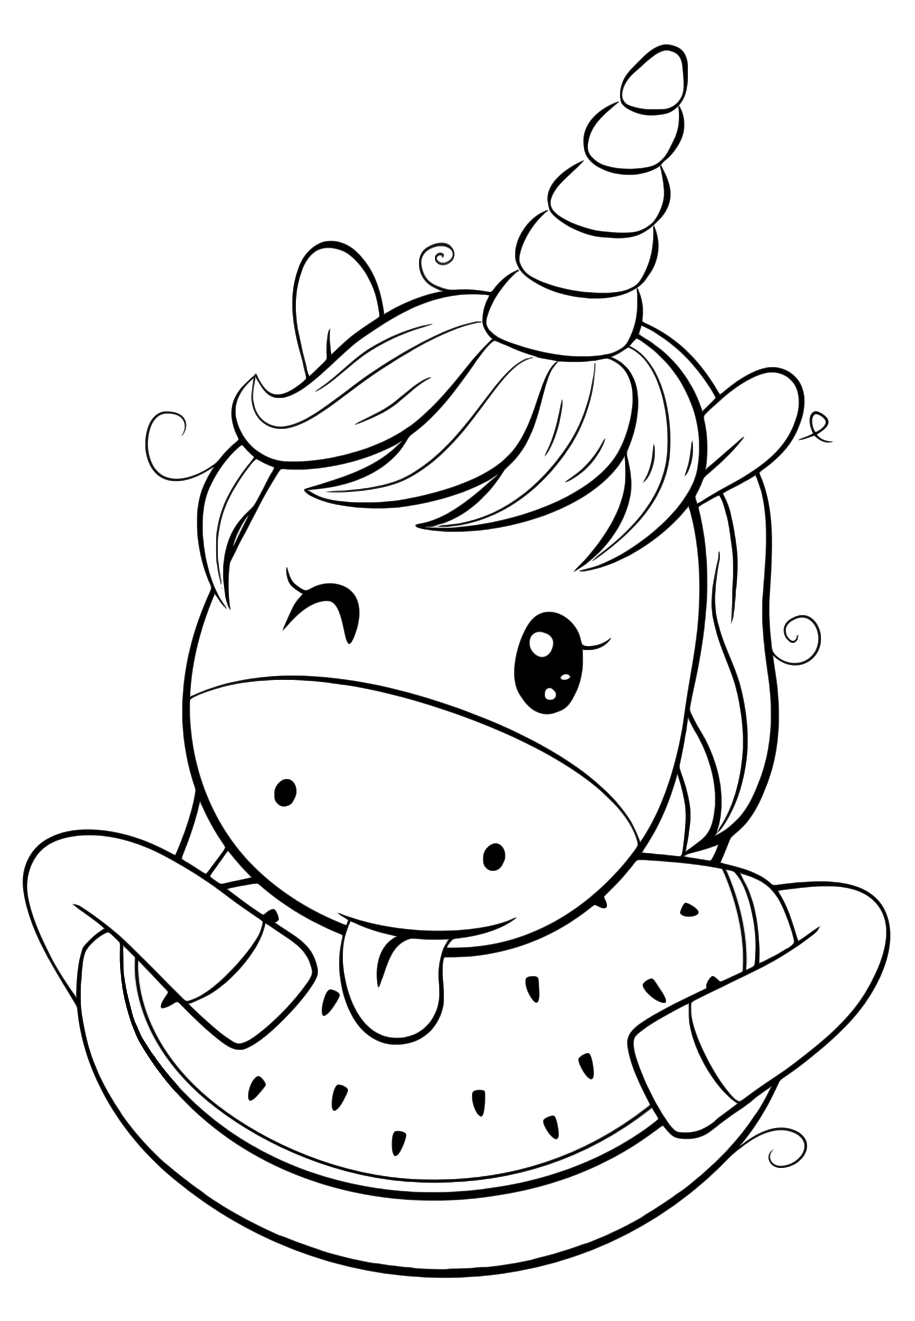 cute easy unicorn coloring pages cute unicorn cartoon cuteunicornclub cute pages unicorn coloring easy